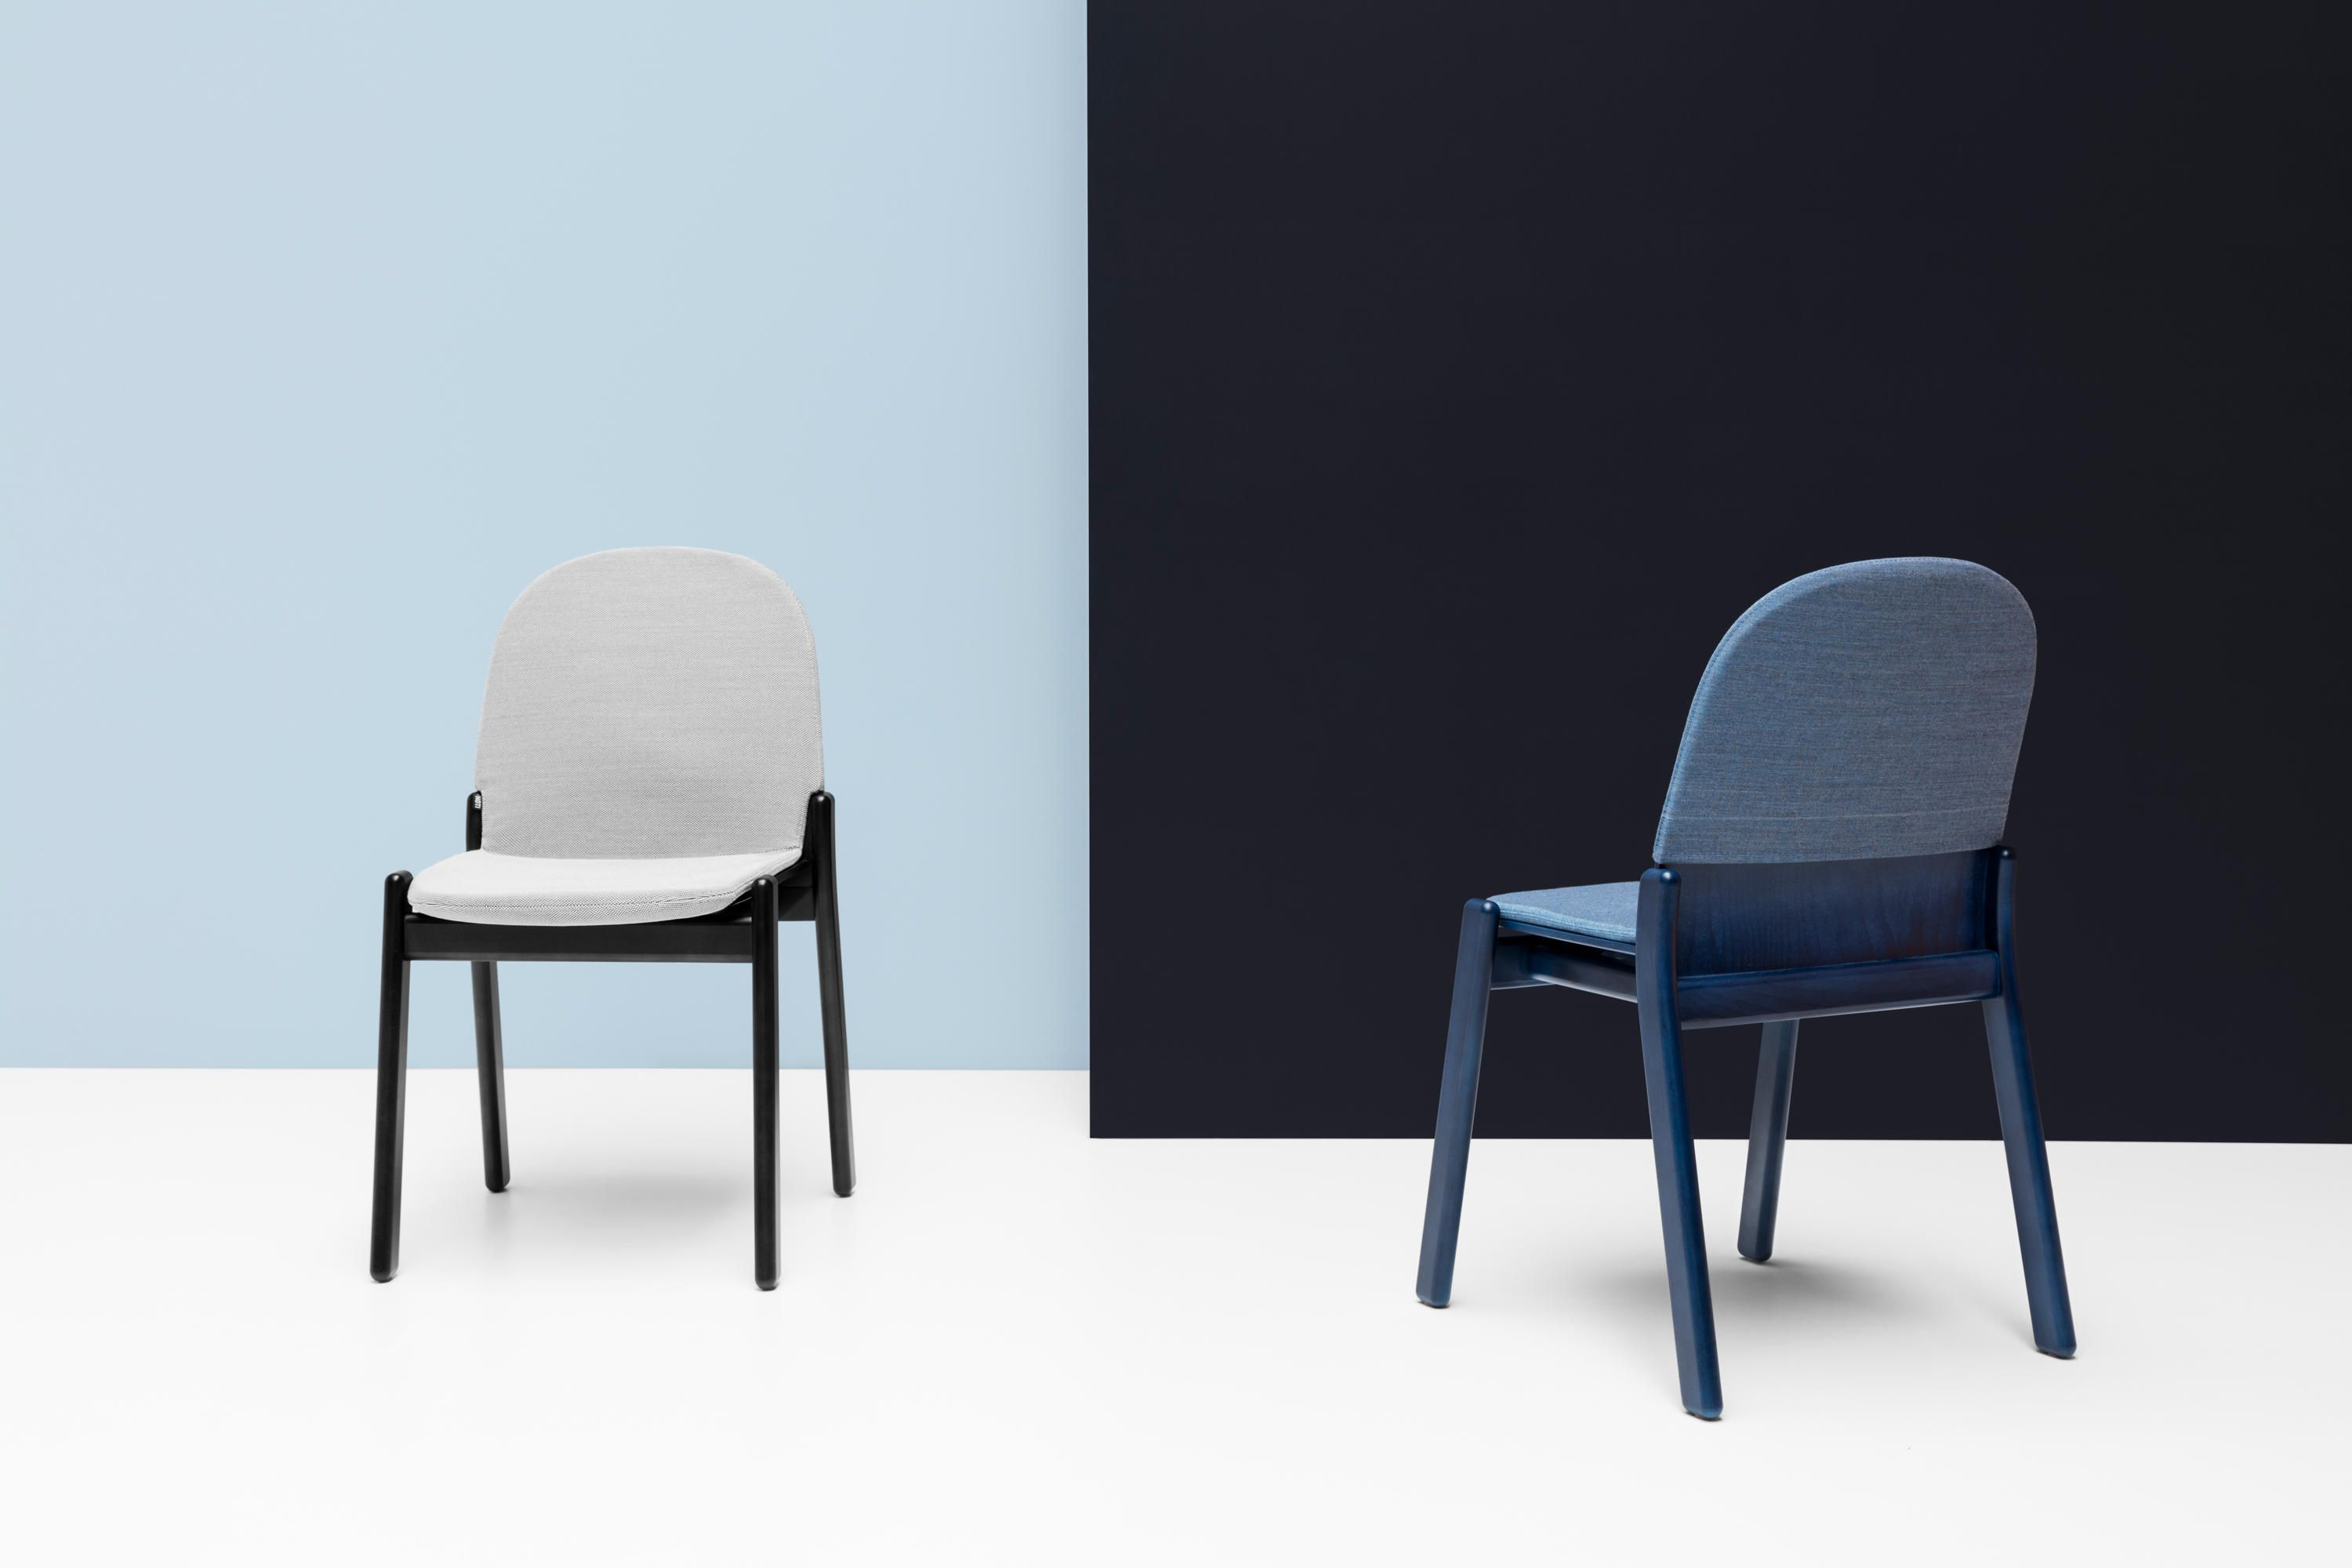 Charmant NORDIC   Designer Restaurant Chairs From NOTI ✓ All Information ✓  High Resolution Images ✓